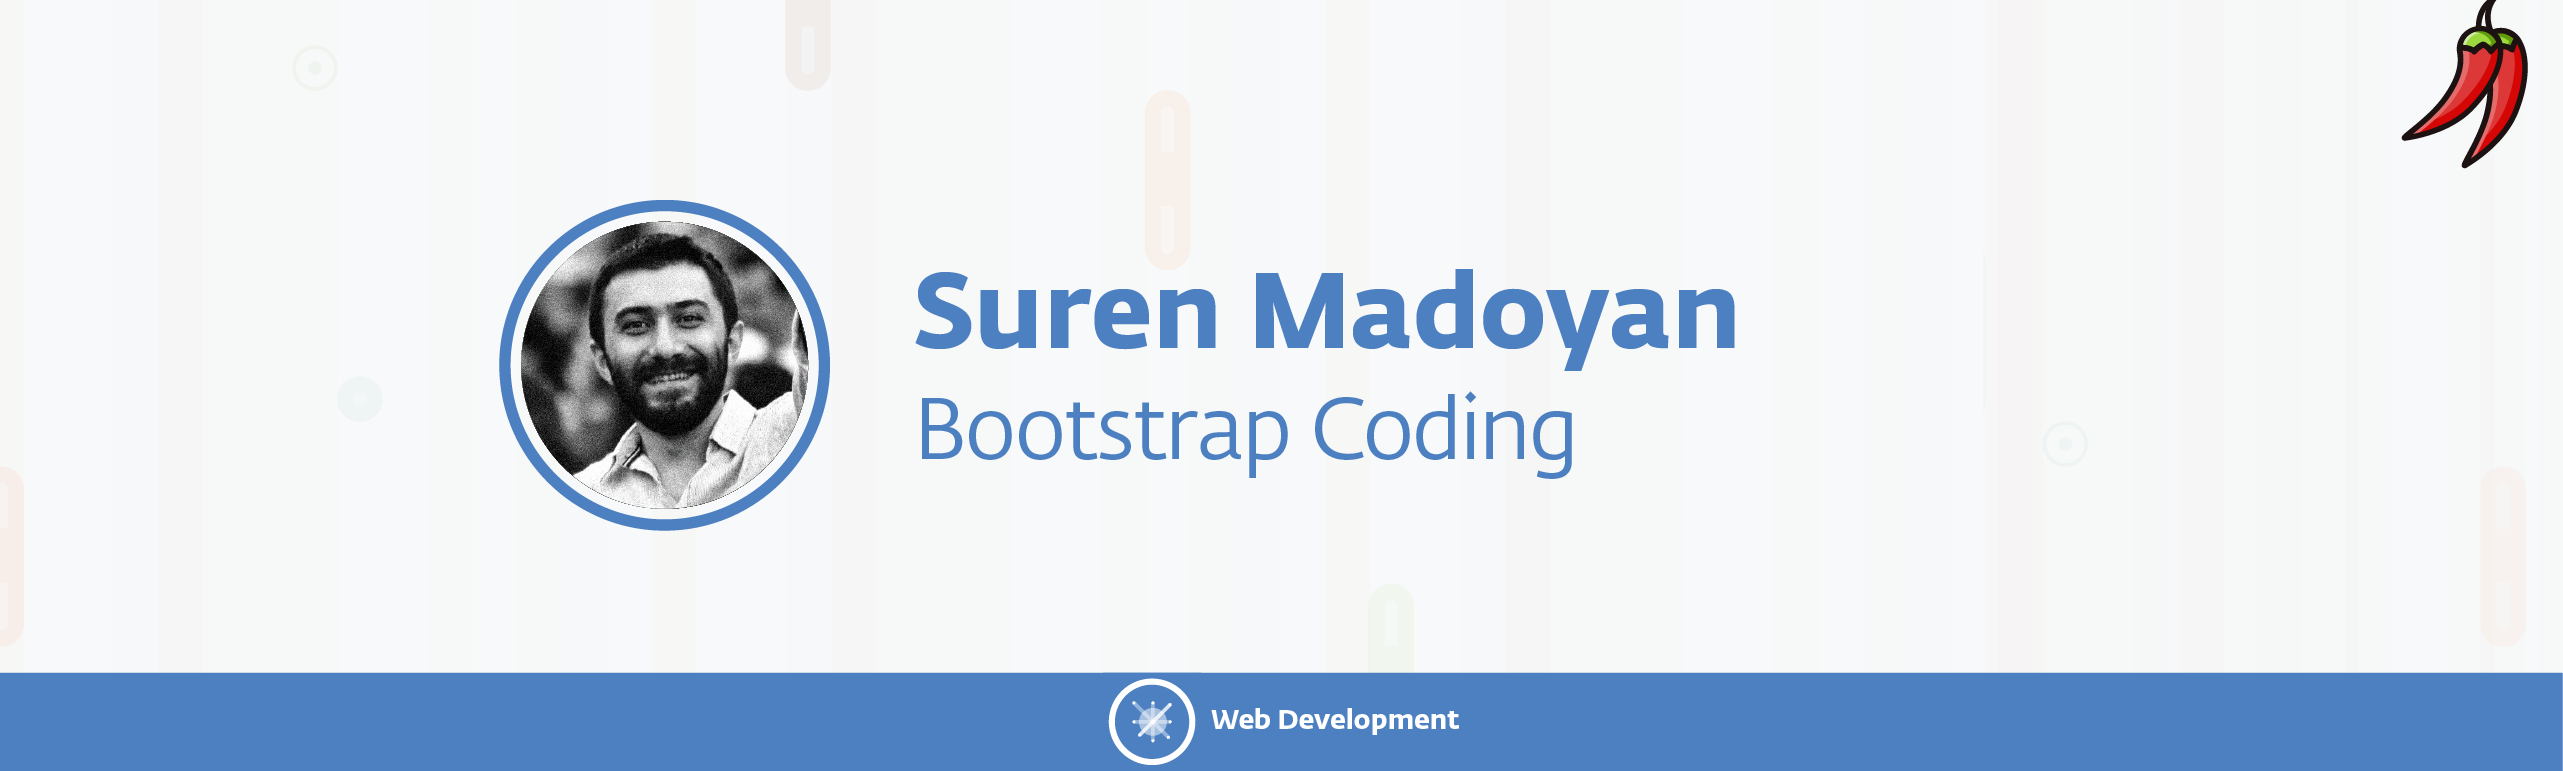 54 - Bootstrap Coding